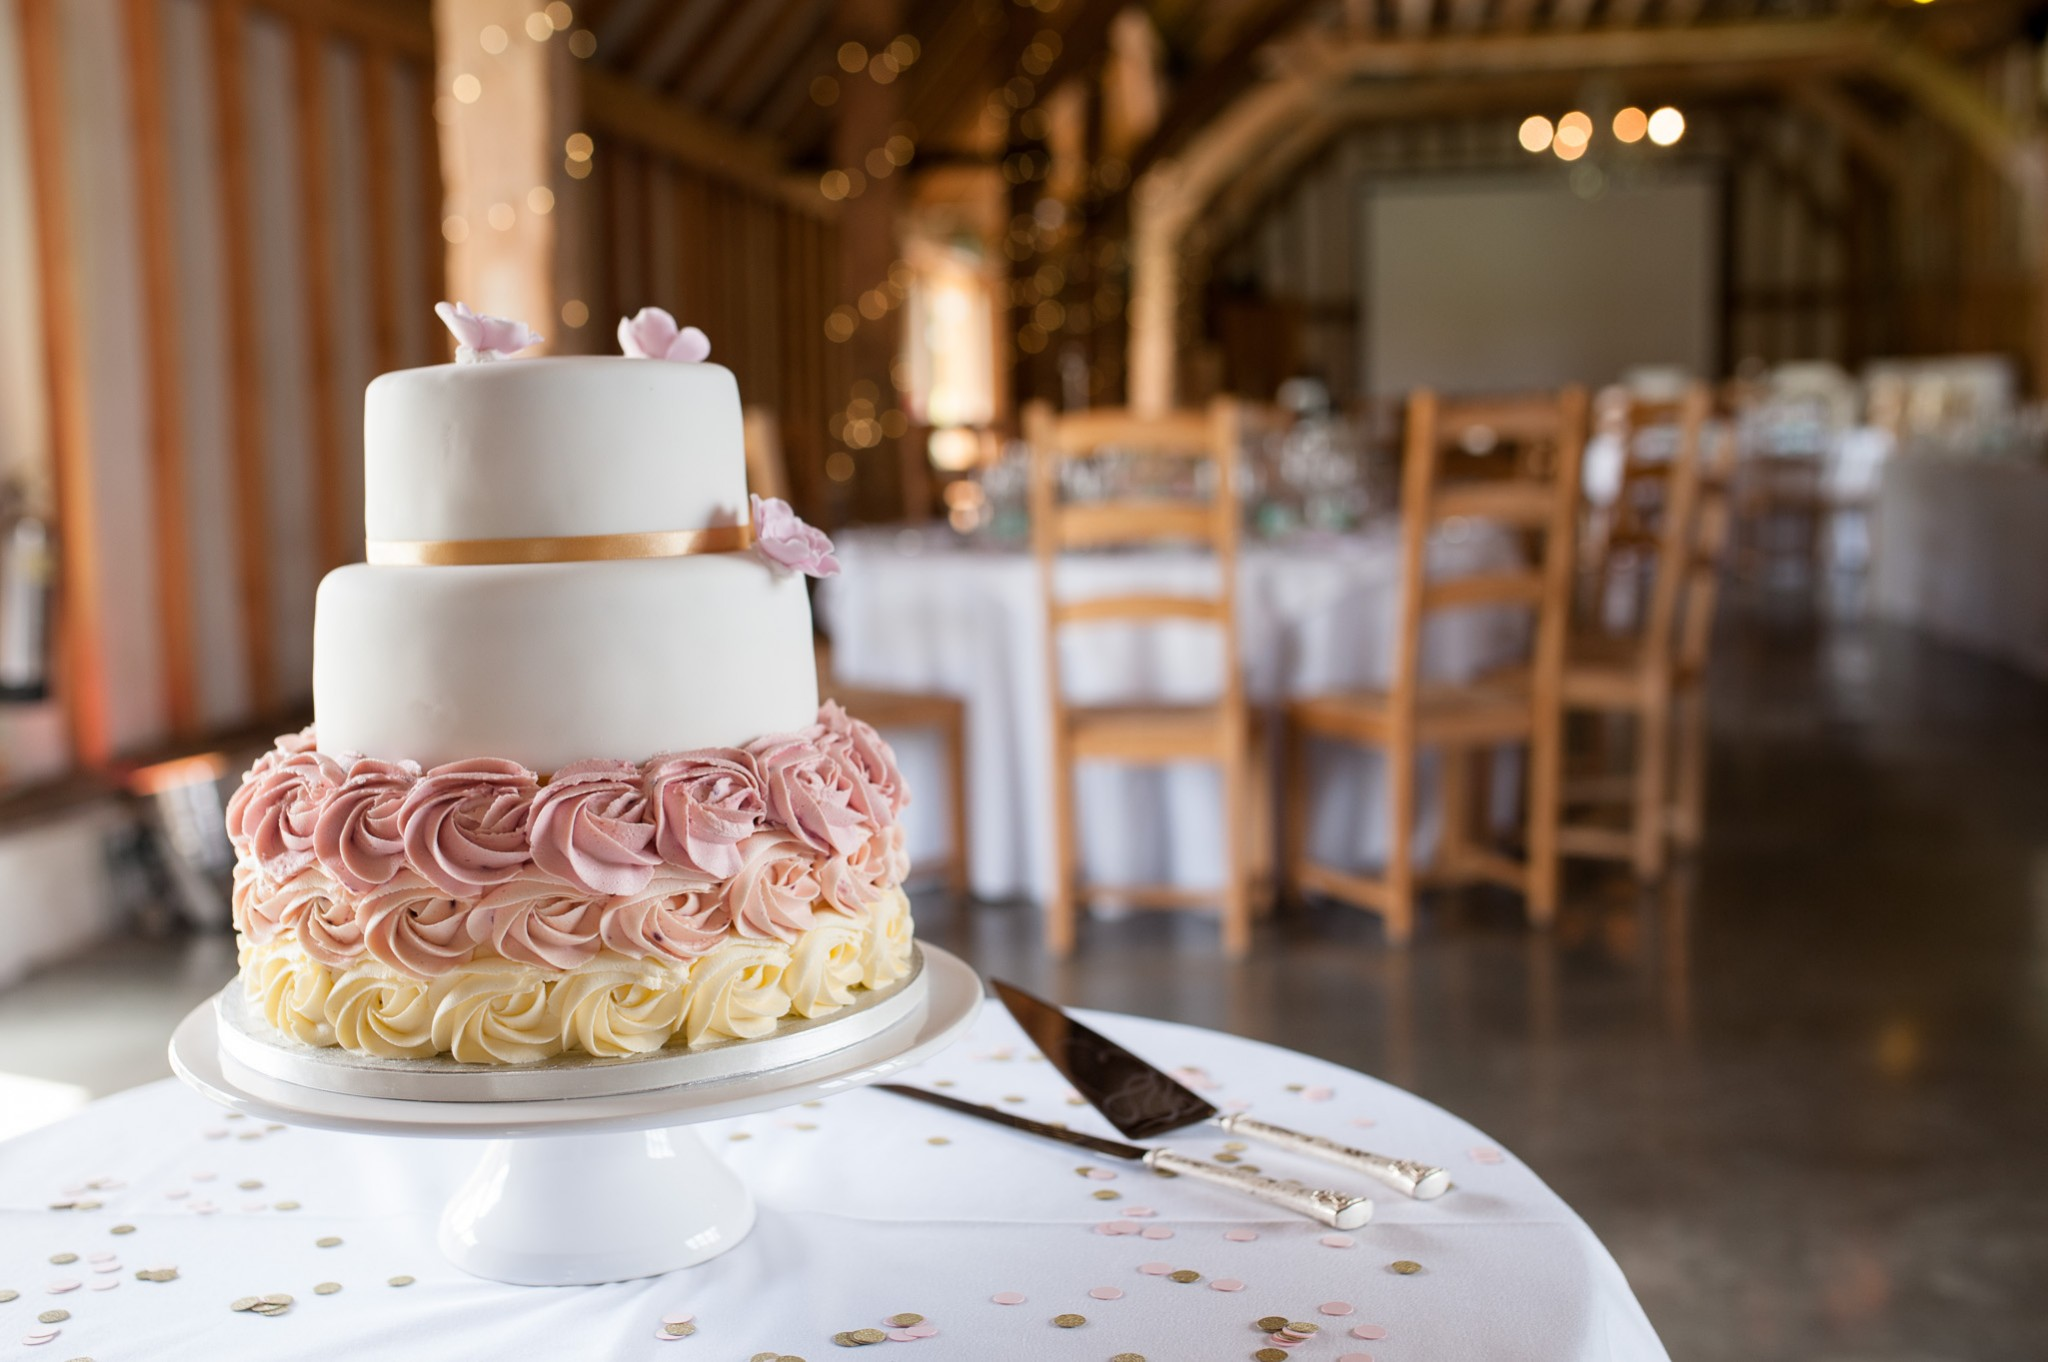 Blush pink buttercream ombre wedding cake - Southend Barns